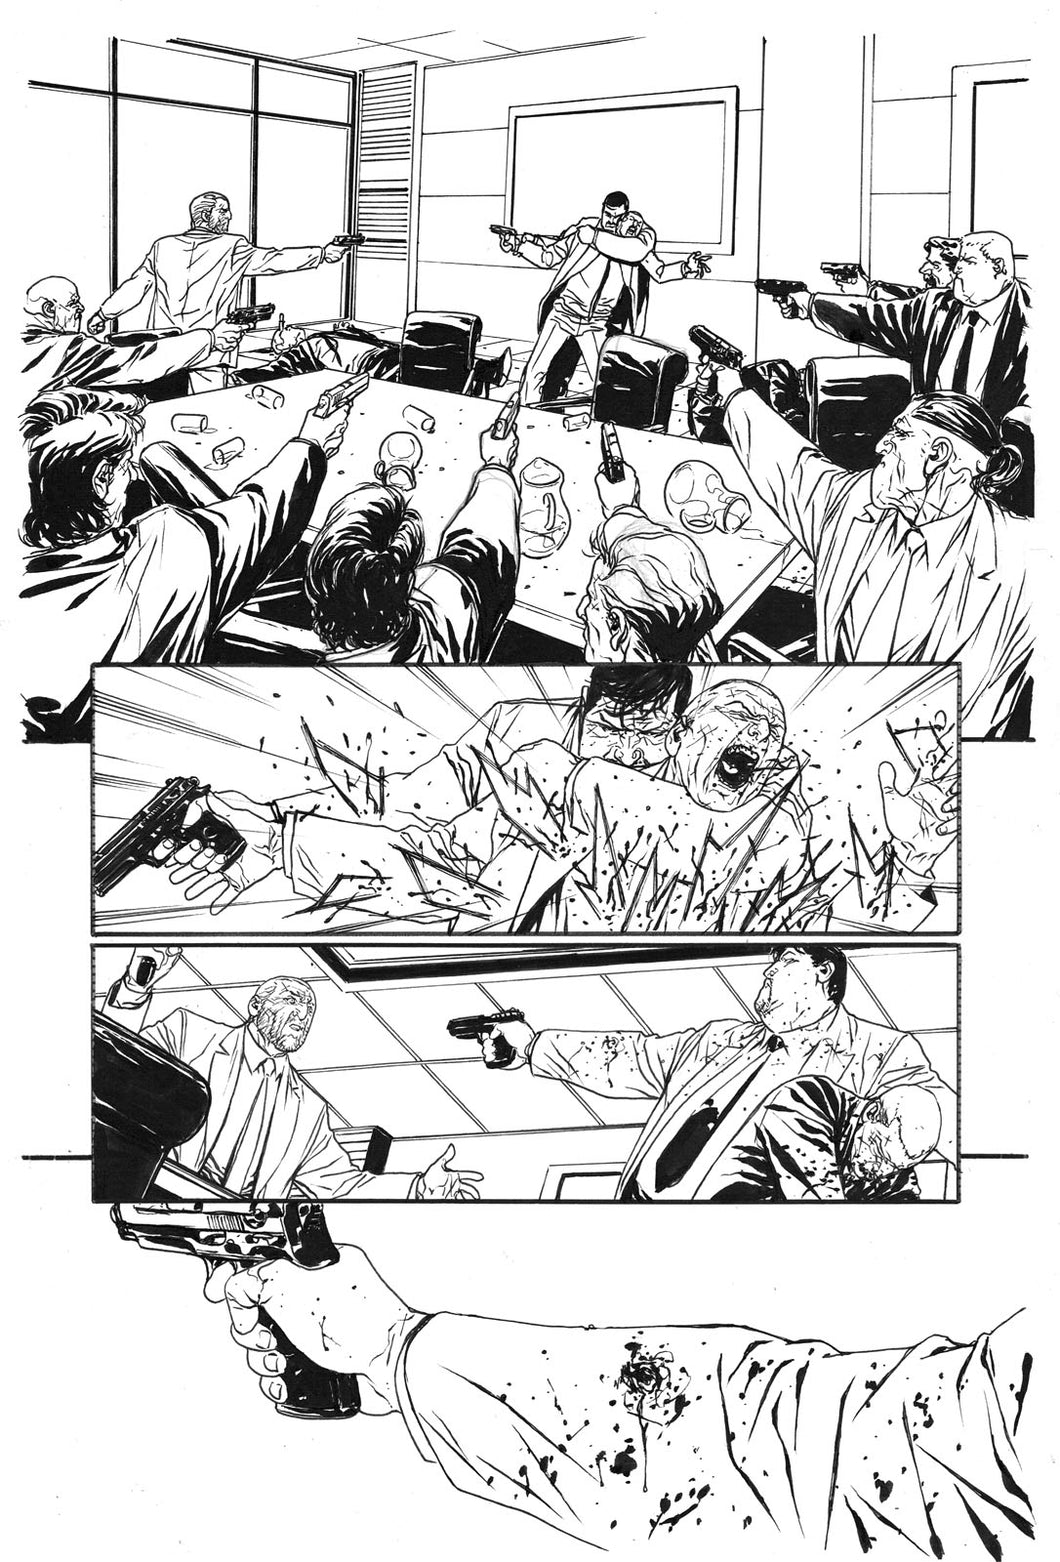 Hardcore #1 Original art - Page 05 by Alessandro Vitti